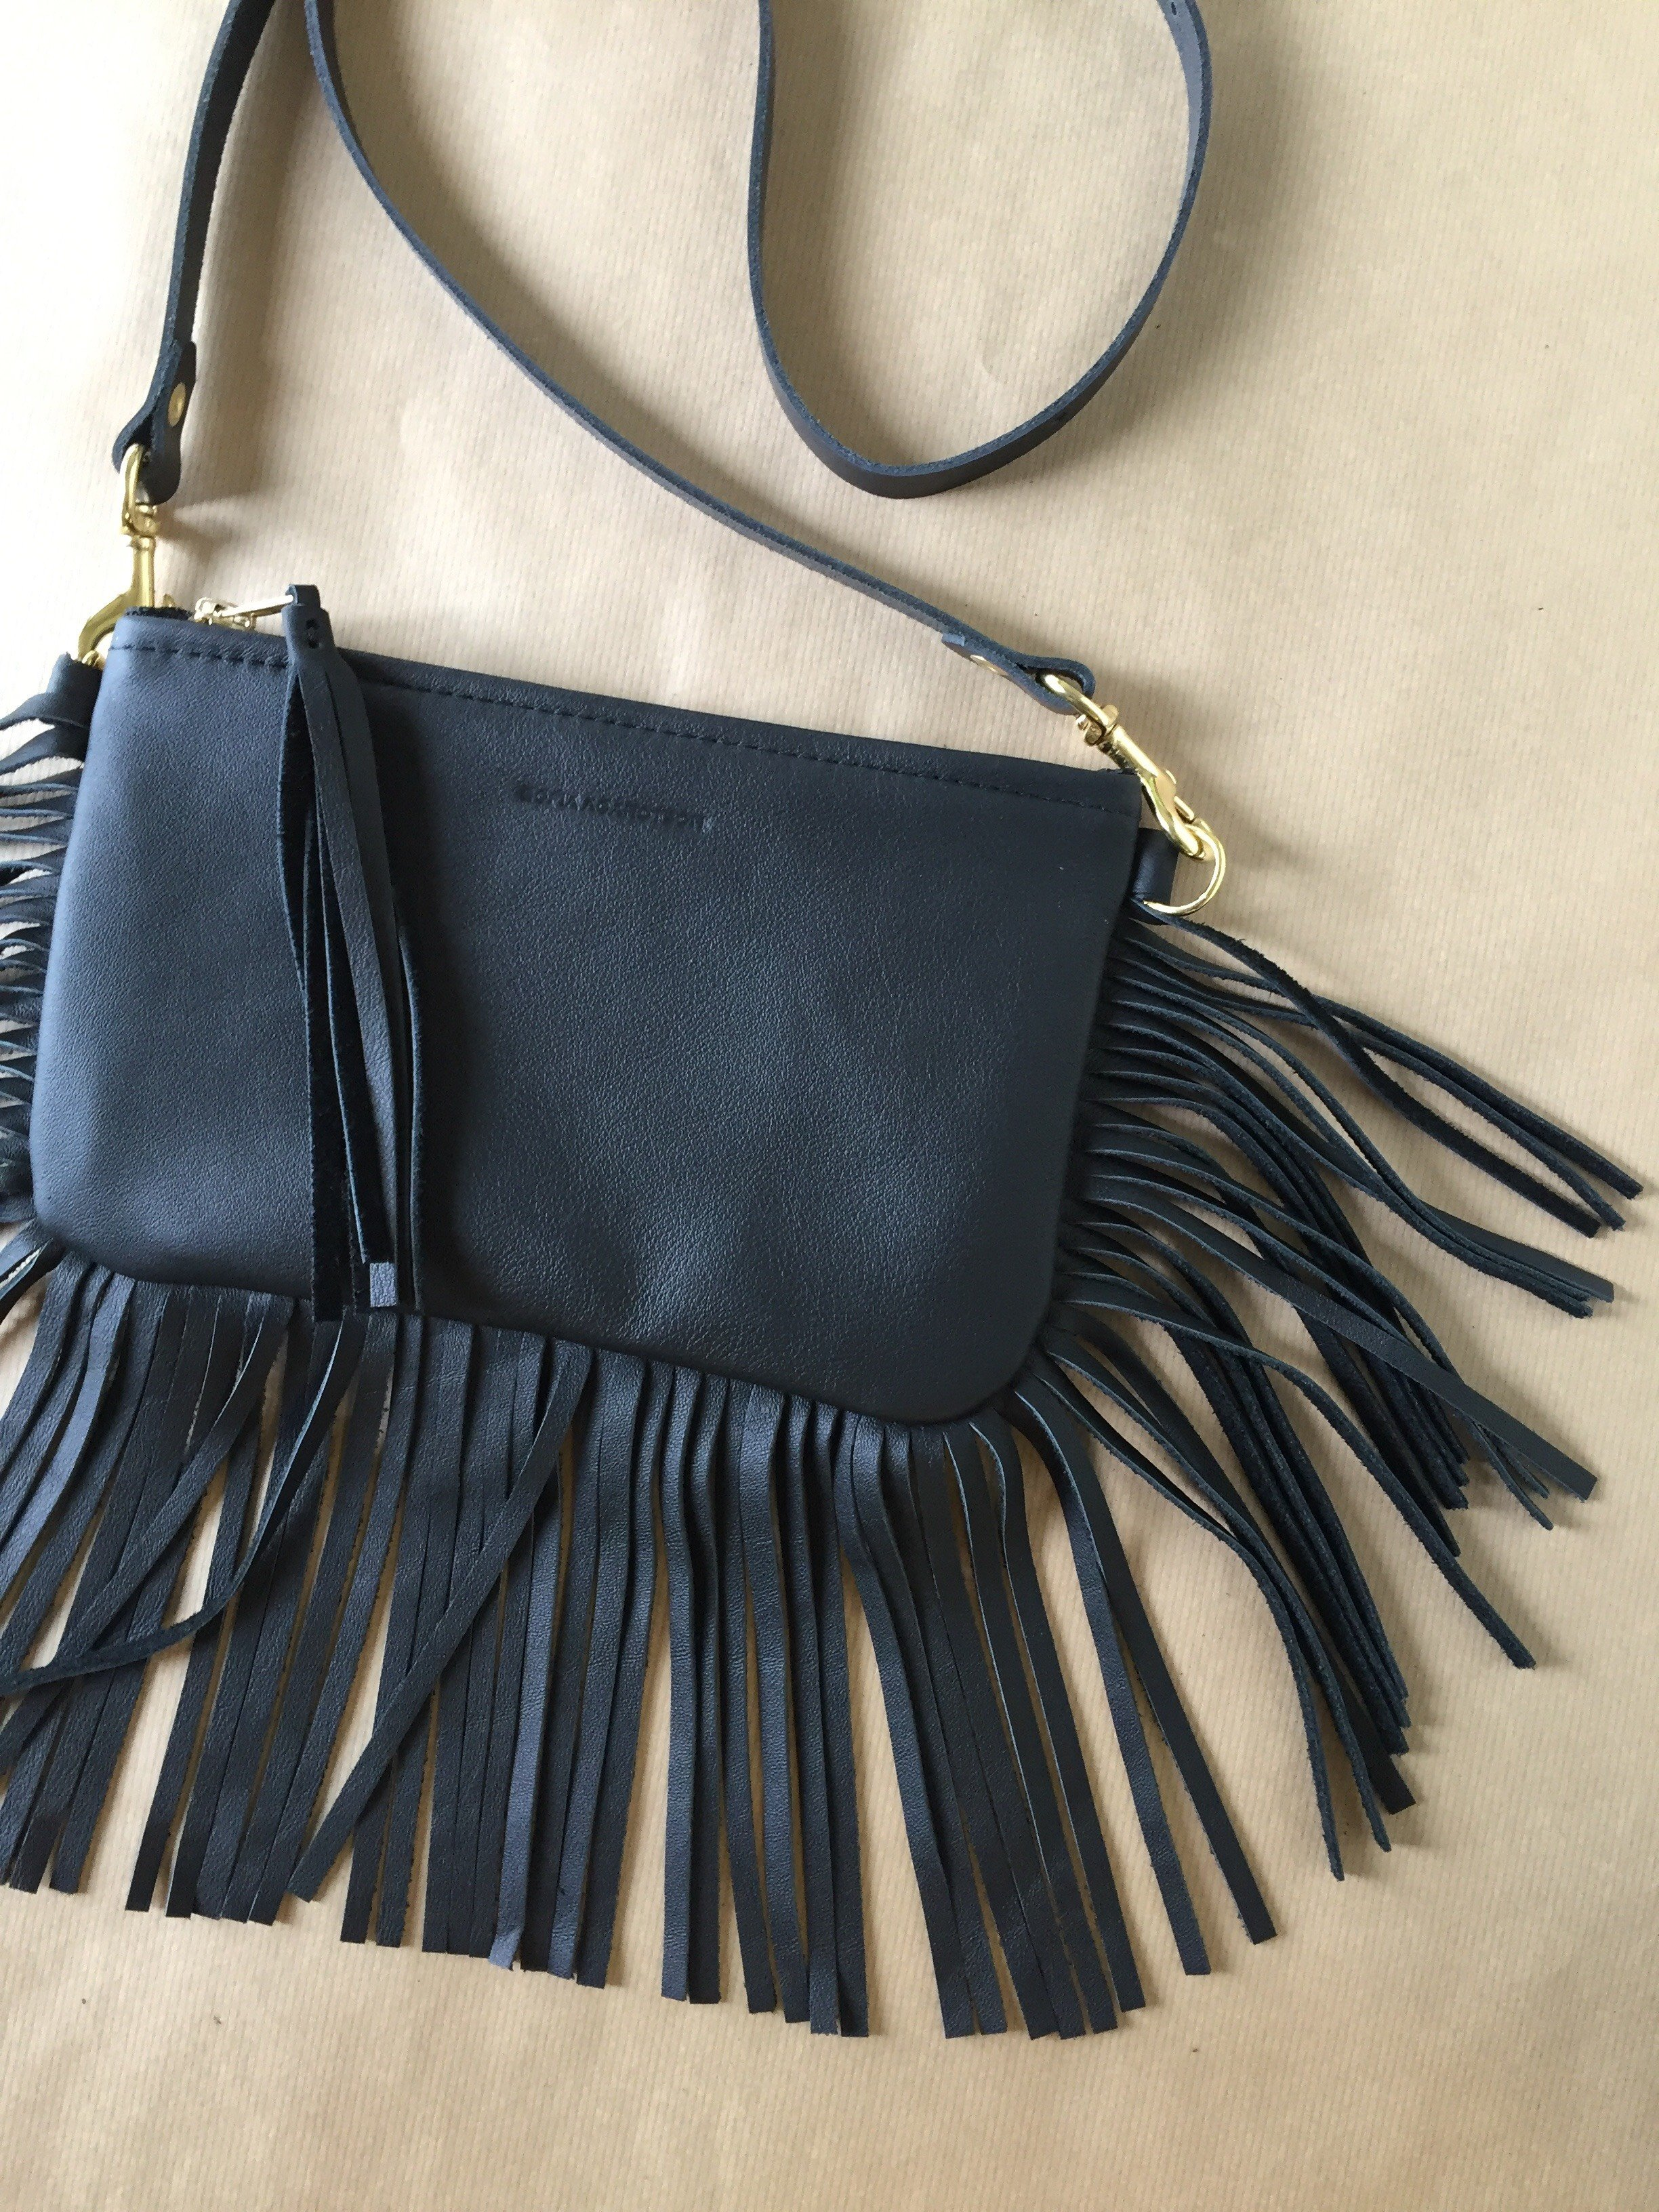 BOHO Shoulder Bag - Black